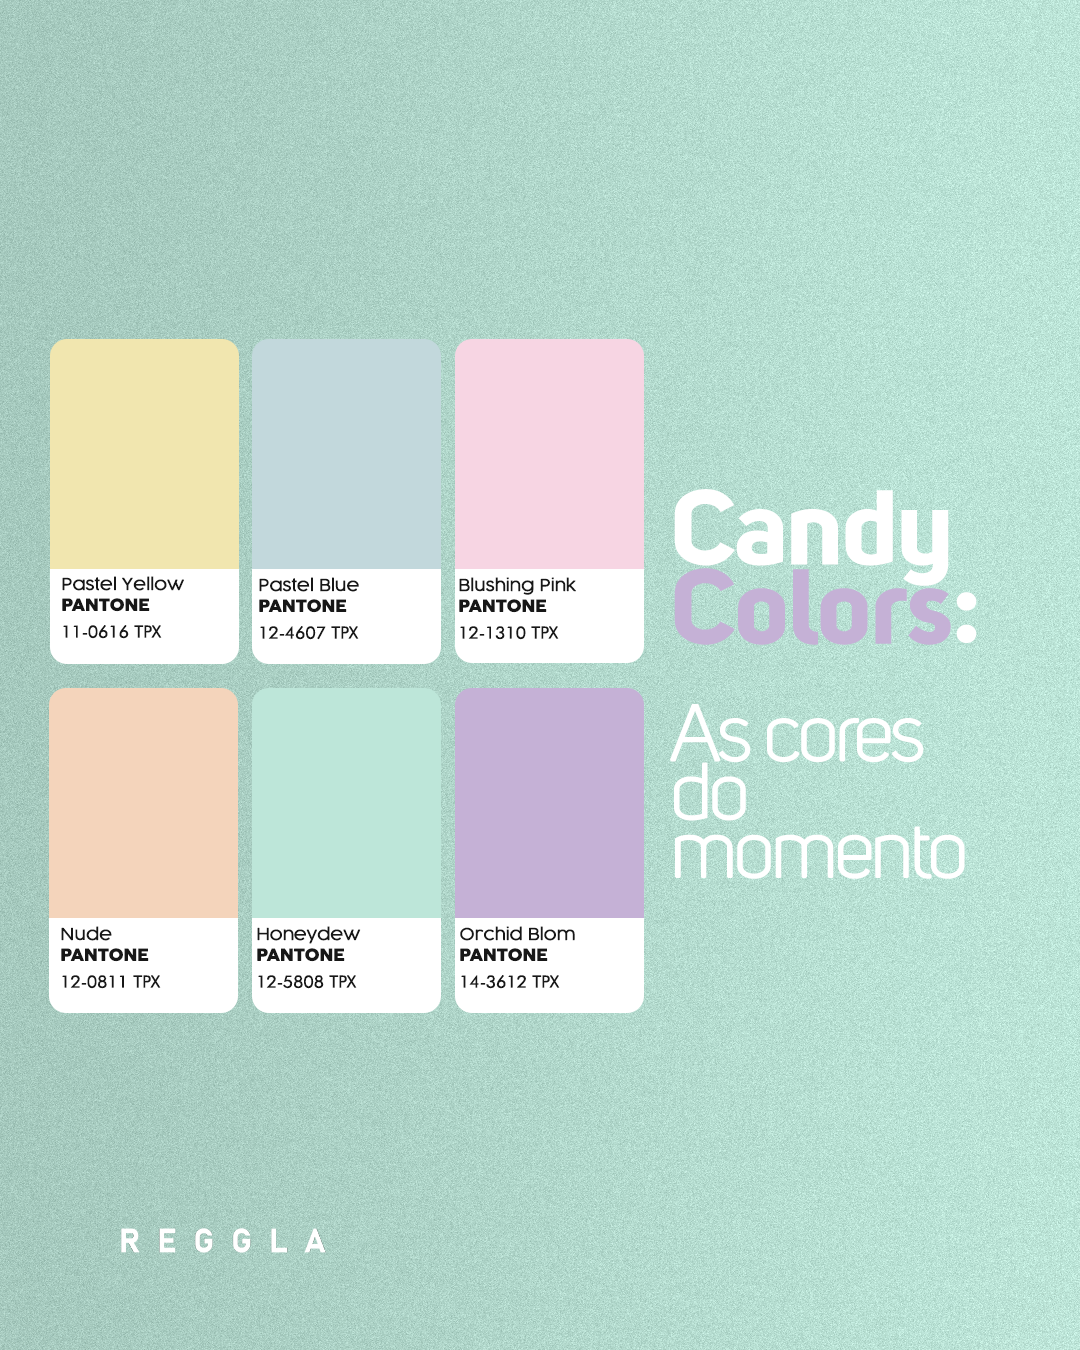 Candy Colors: as cores do momento